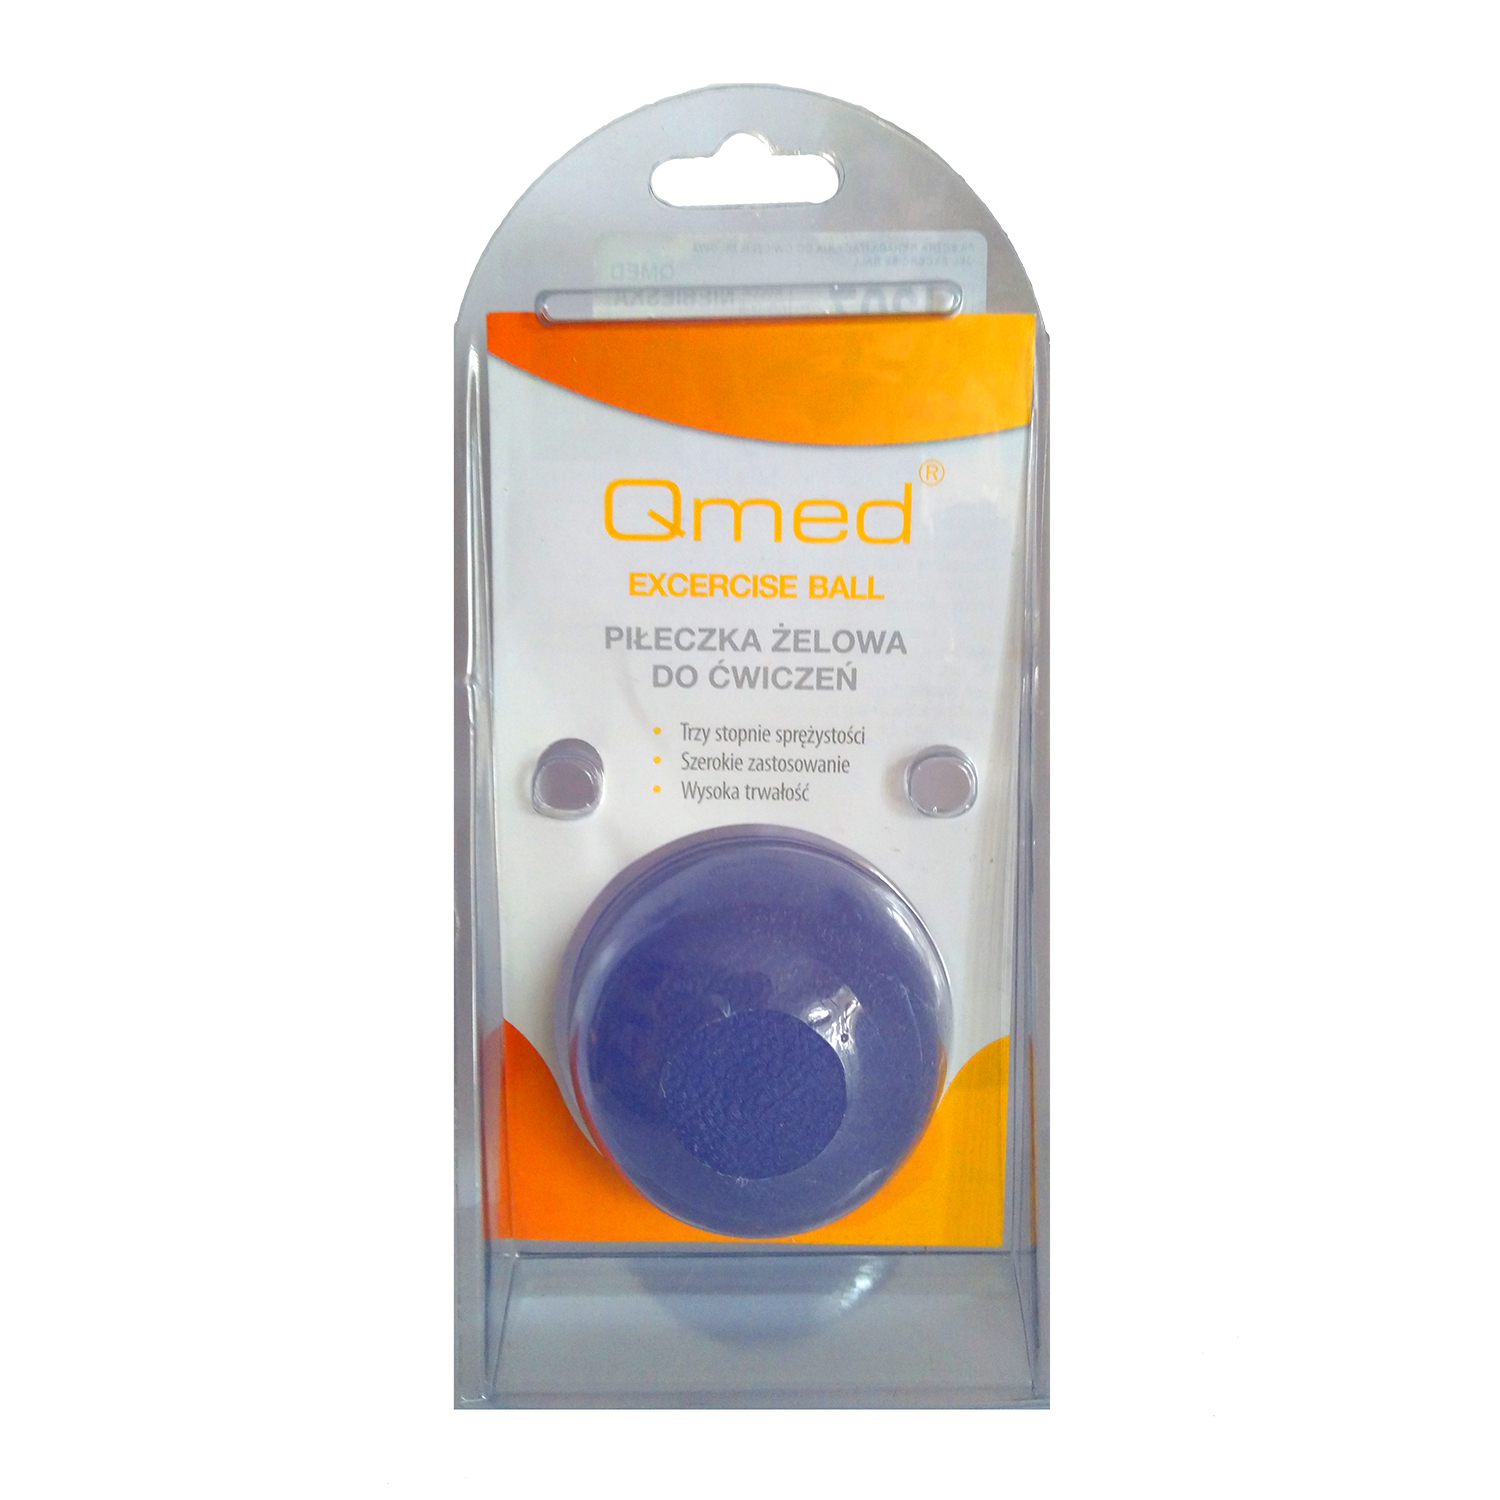 Qmed Gel Exercise Ball Гелевый мячик для упражнений, средней жесткости